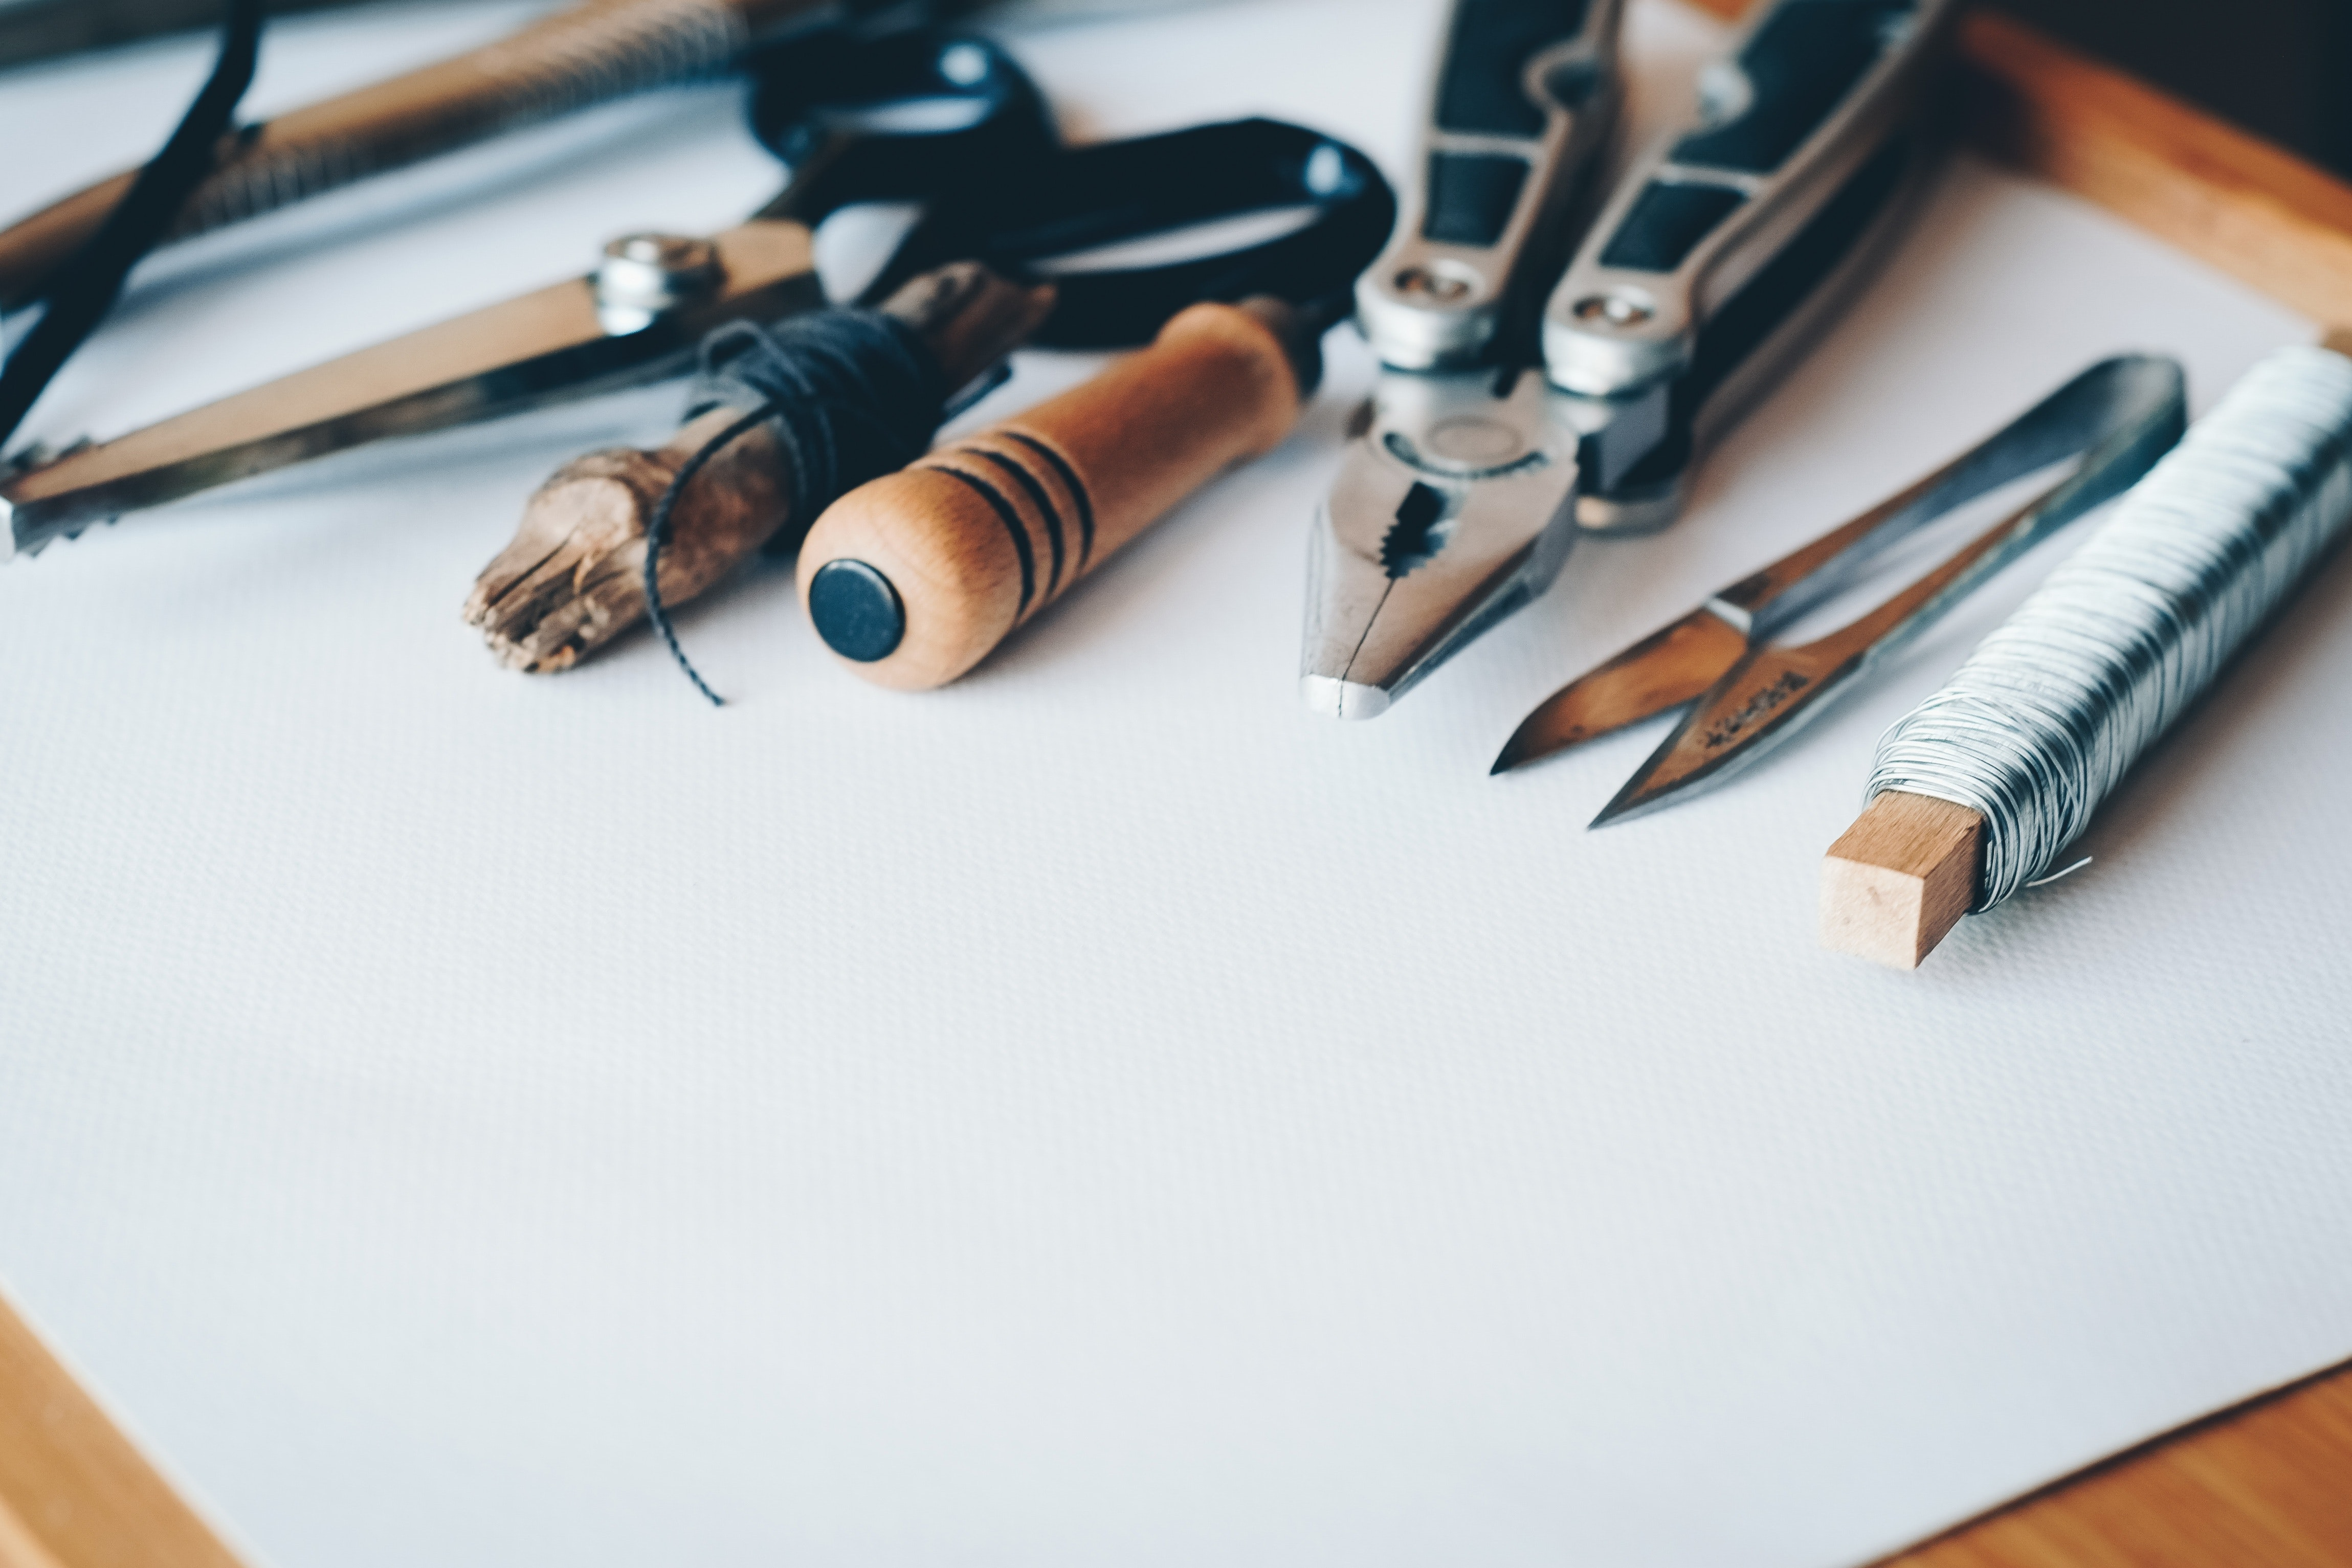 Do DIY Projects So You Can Learn New Things